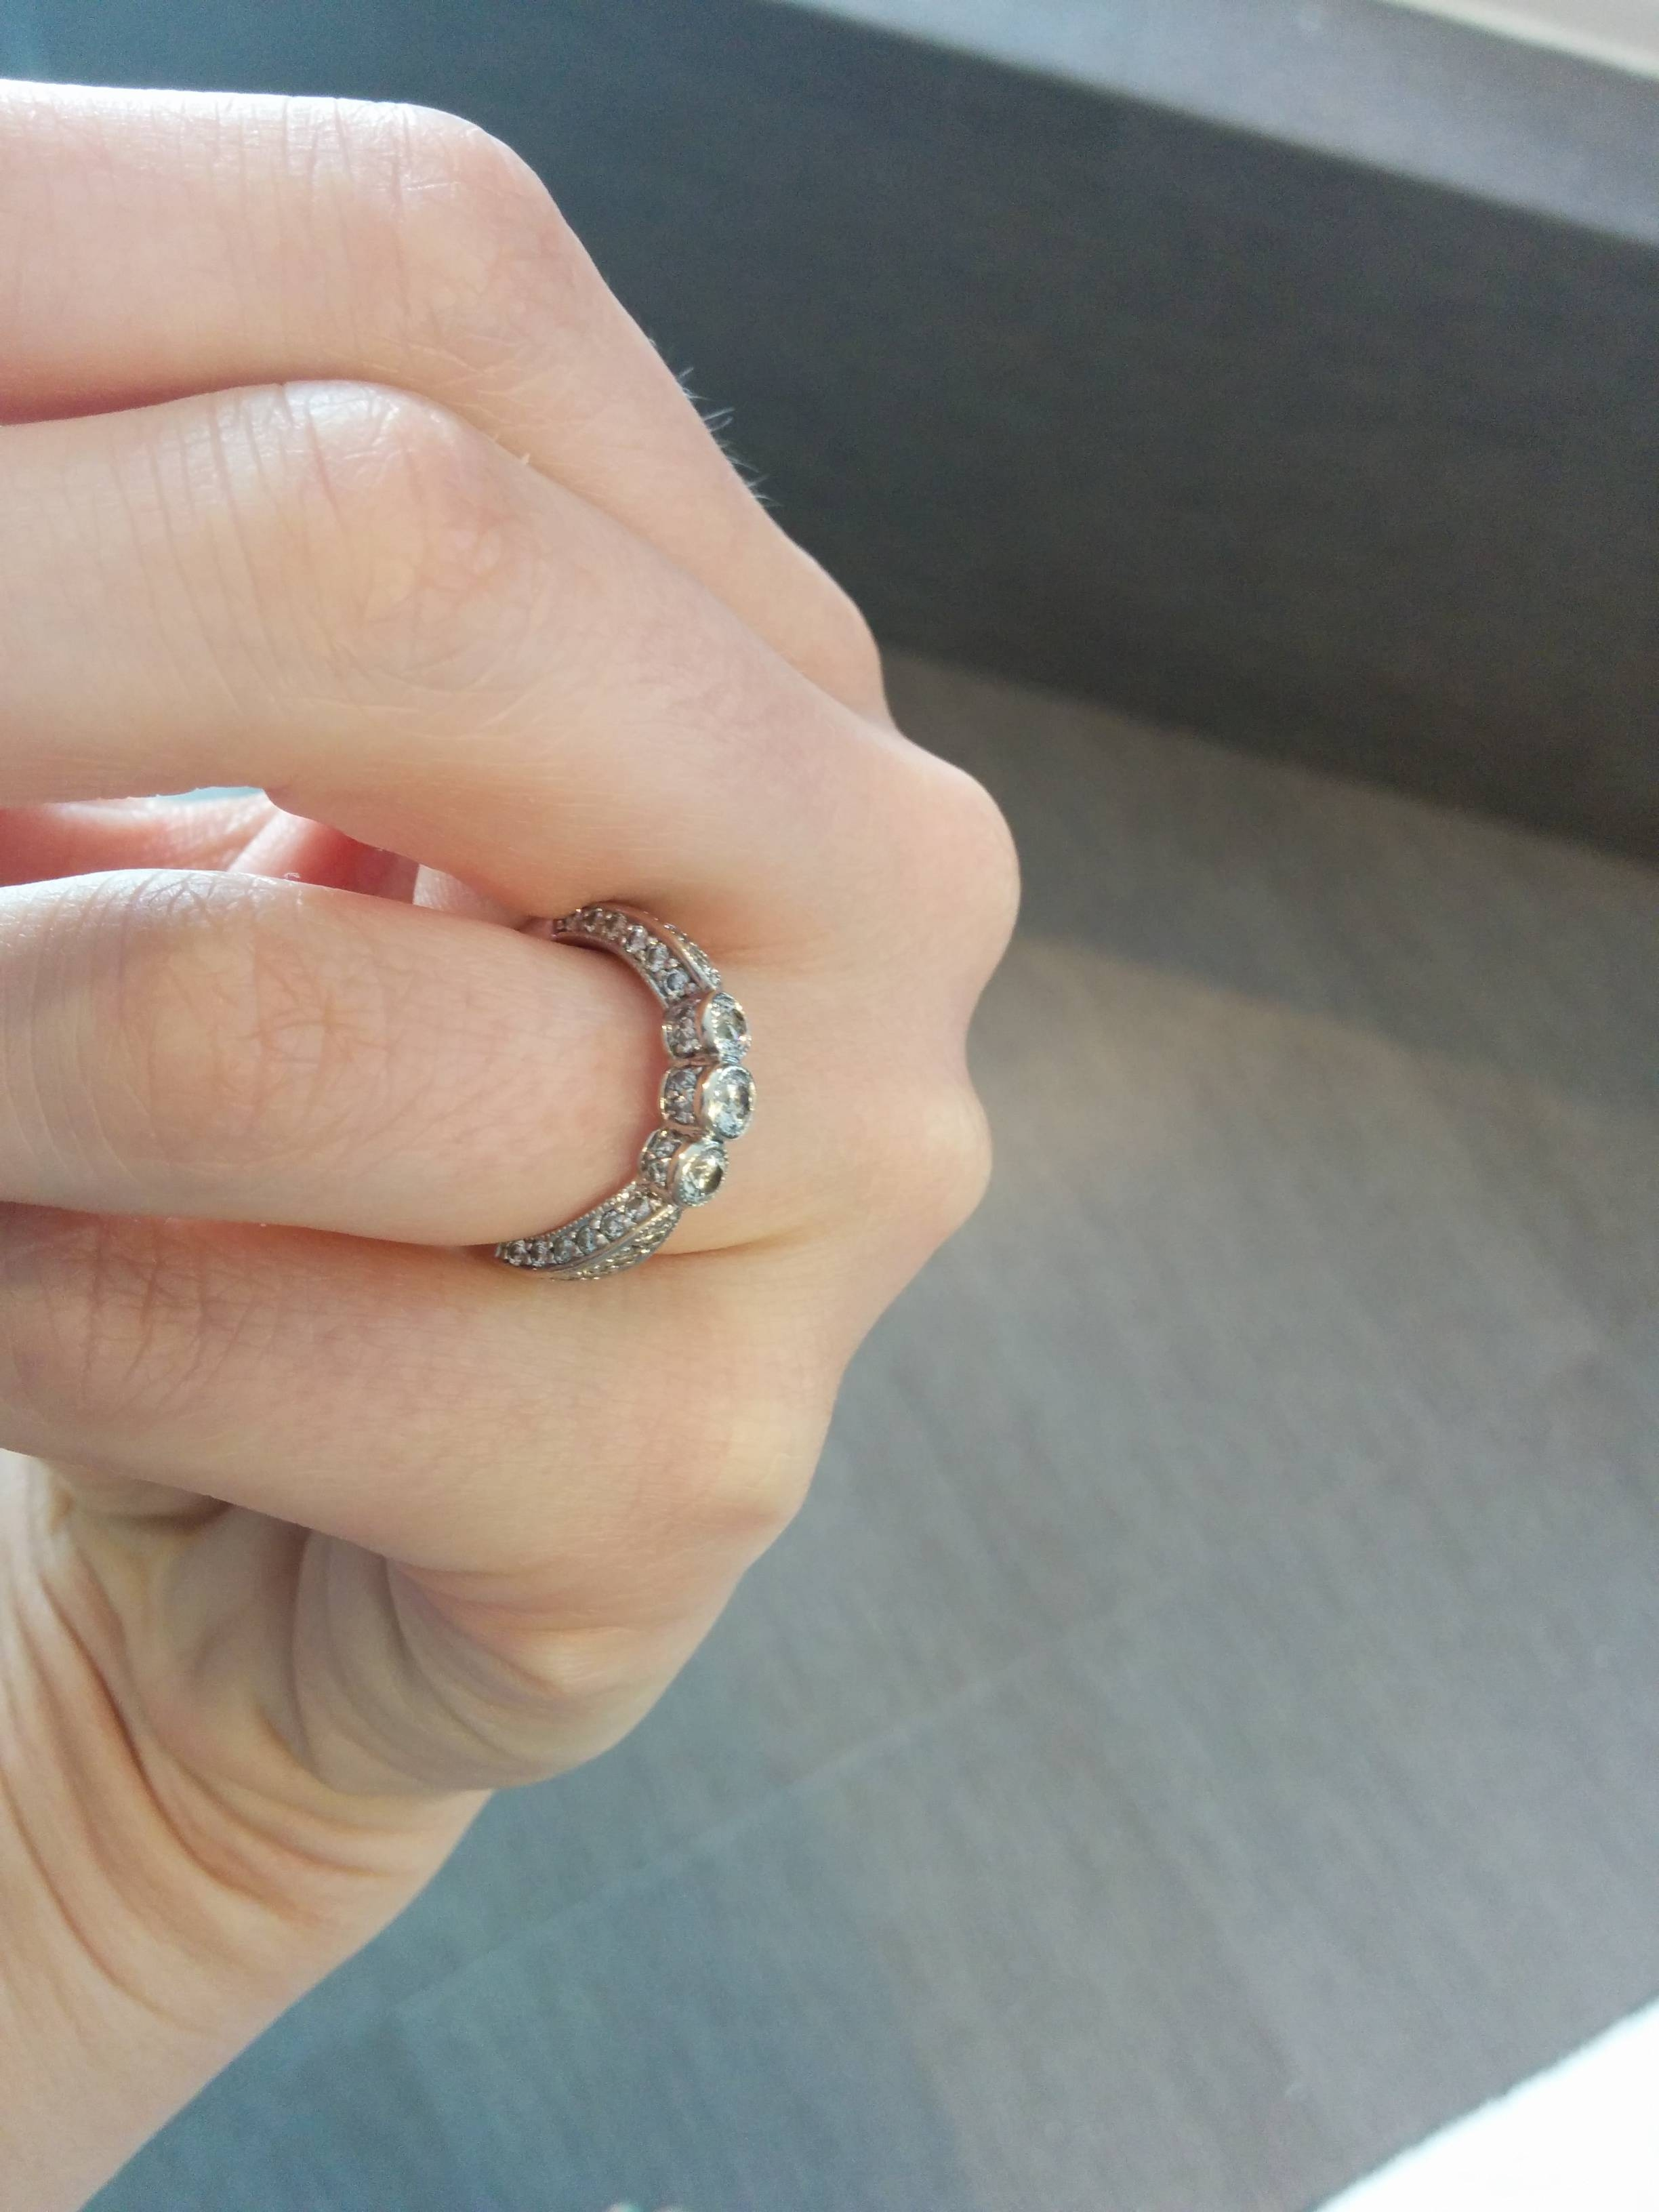 10Th Anniversary Ring Upgrade Help! – Weddingbee With Regard To Latest 10Th Anniversary Rings (View 2 of 15)